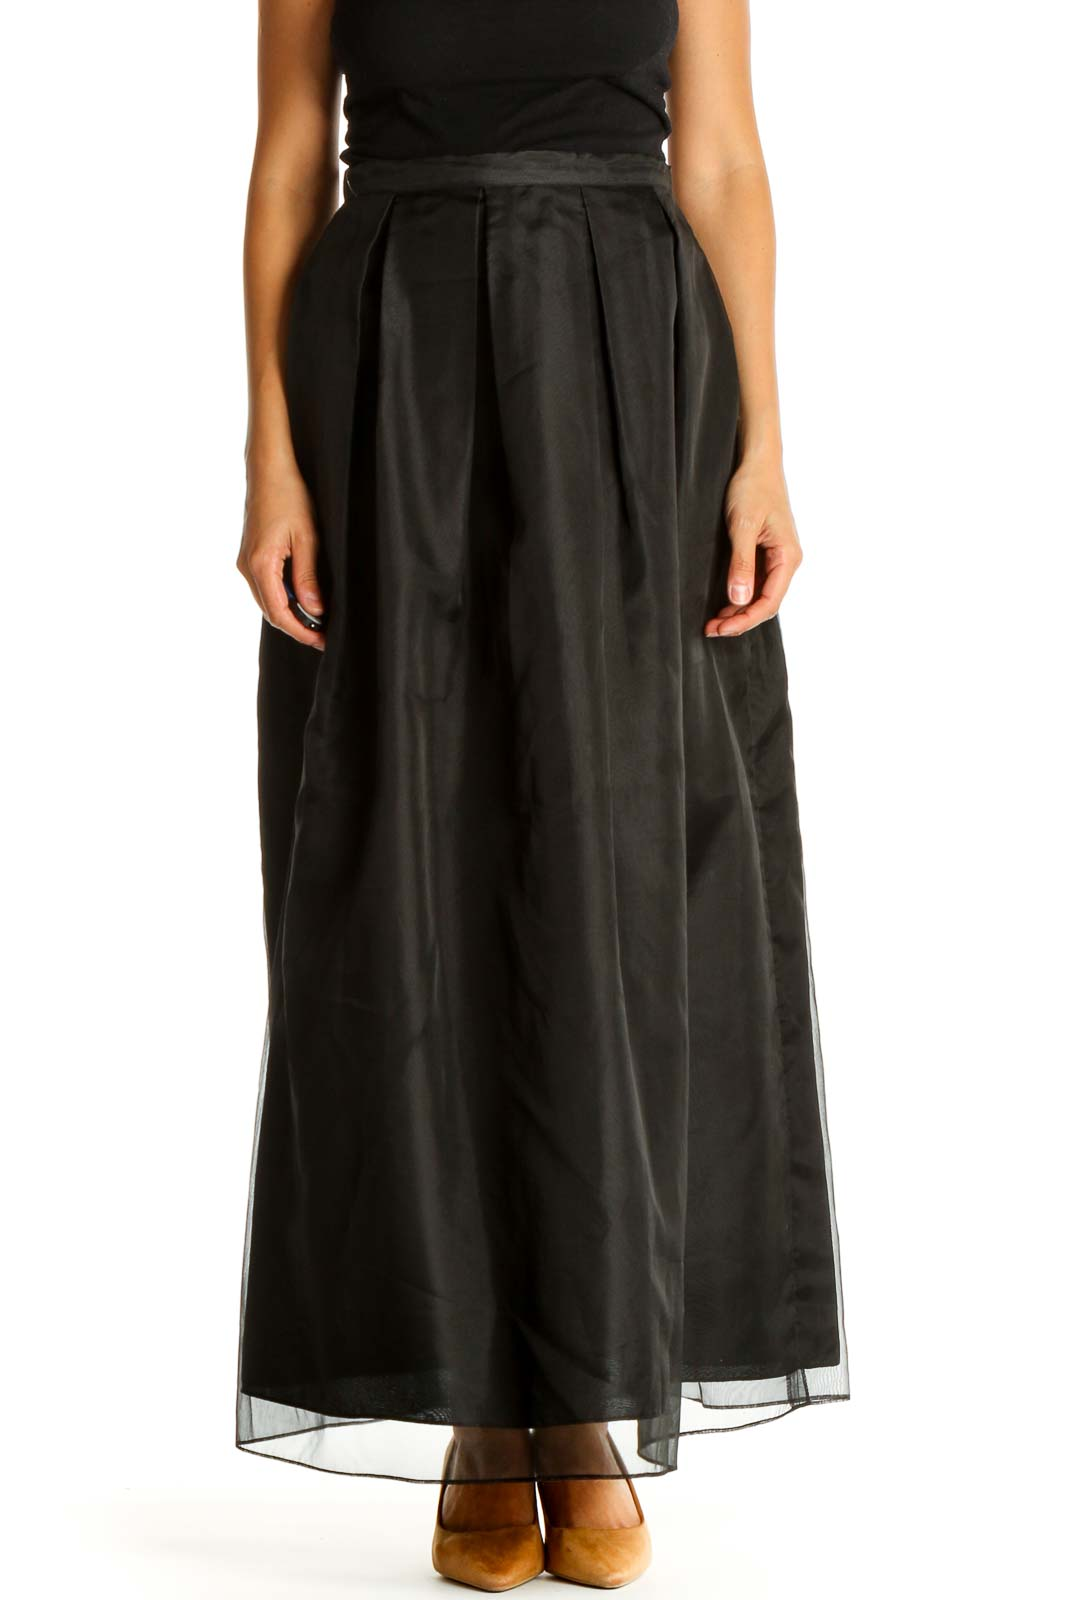 Black Solid Retro Flared Skirt Front